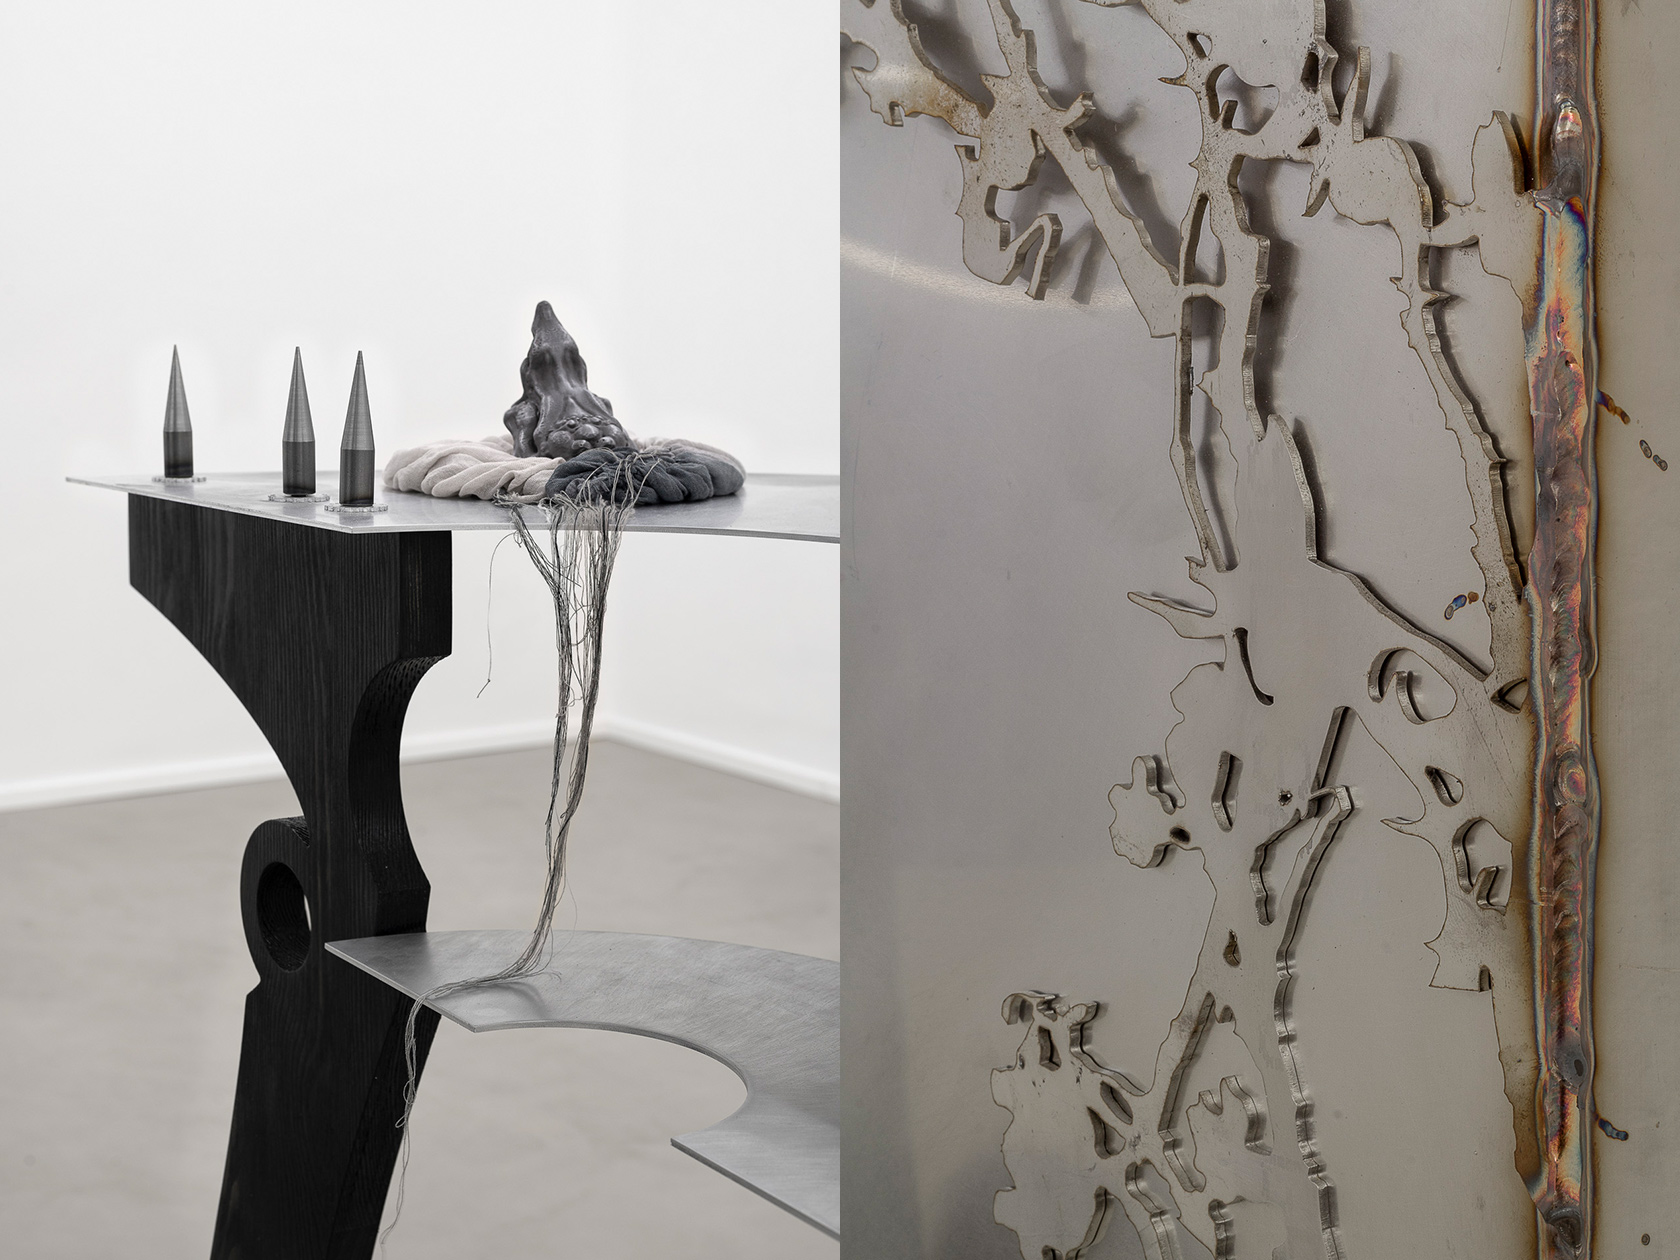 Ula Lucińska and Michał Knychaus from Inside Job on how they combine ancient aesthetics and contemporary art in their recent exhibition 'Breathing in the Shallows'